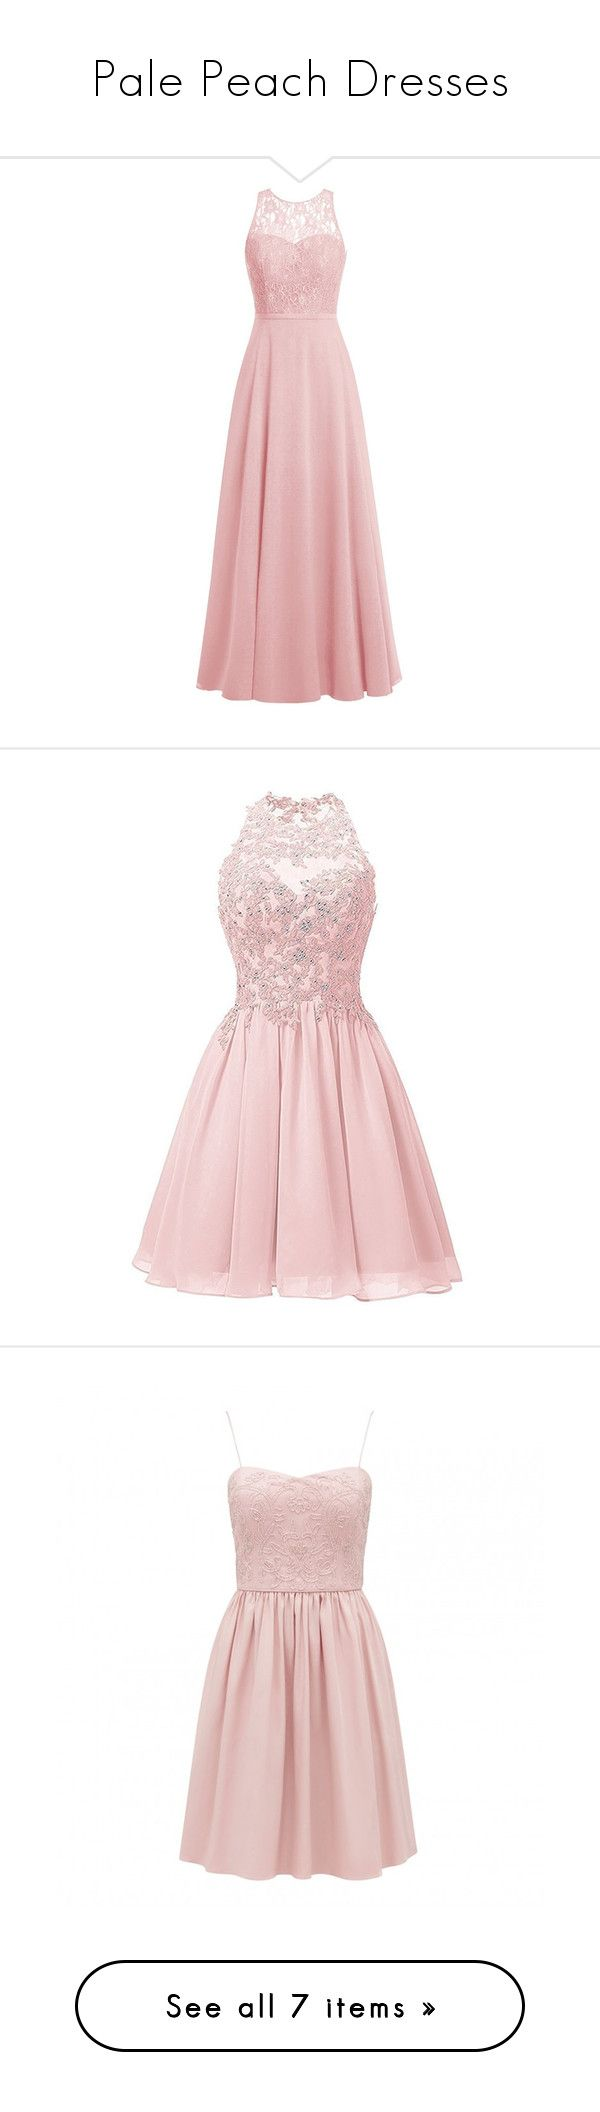 """""""Pale Peach Dresses"""" by tegan-b-riley on Polyvore featuring dresses, gowns, long dresses, lace gown, long evening dresses, long gown, long lace dress, short prom dresses, short cocktail dresses and pink prom dresses"""